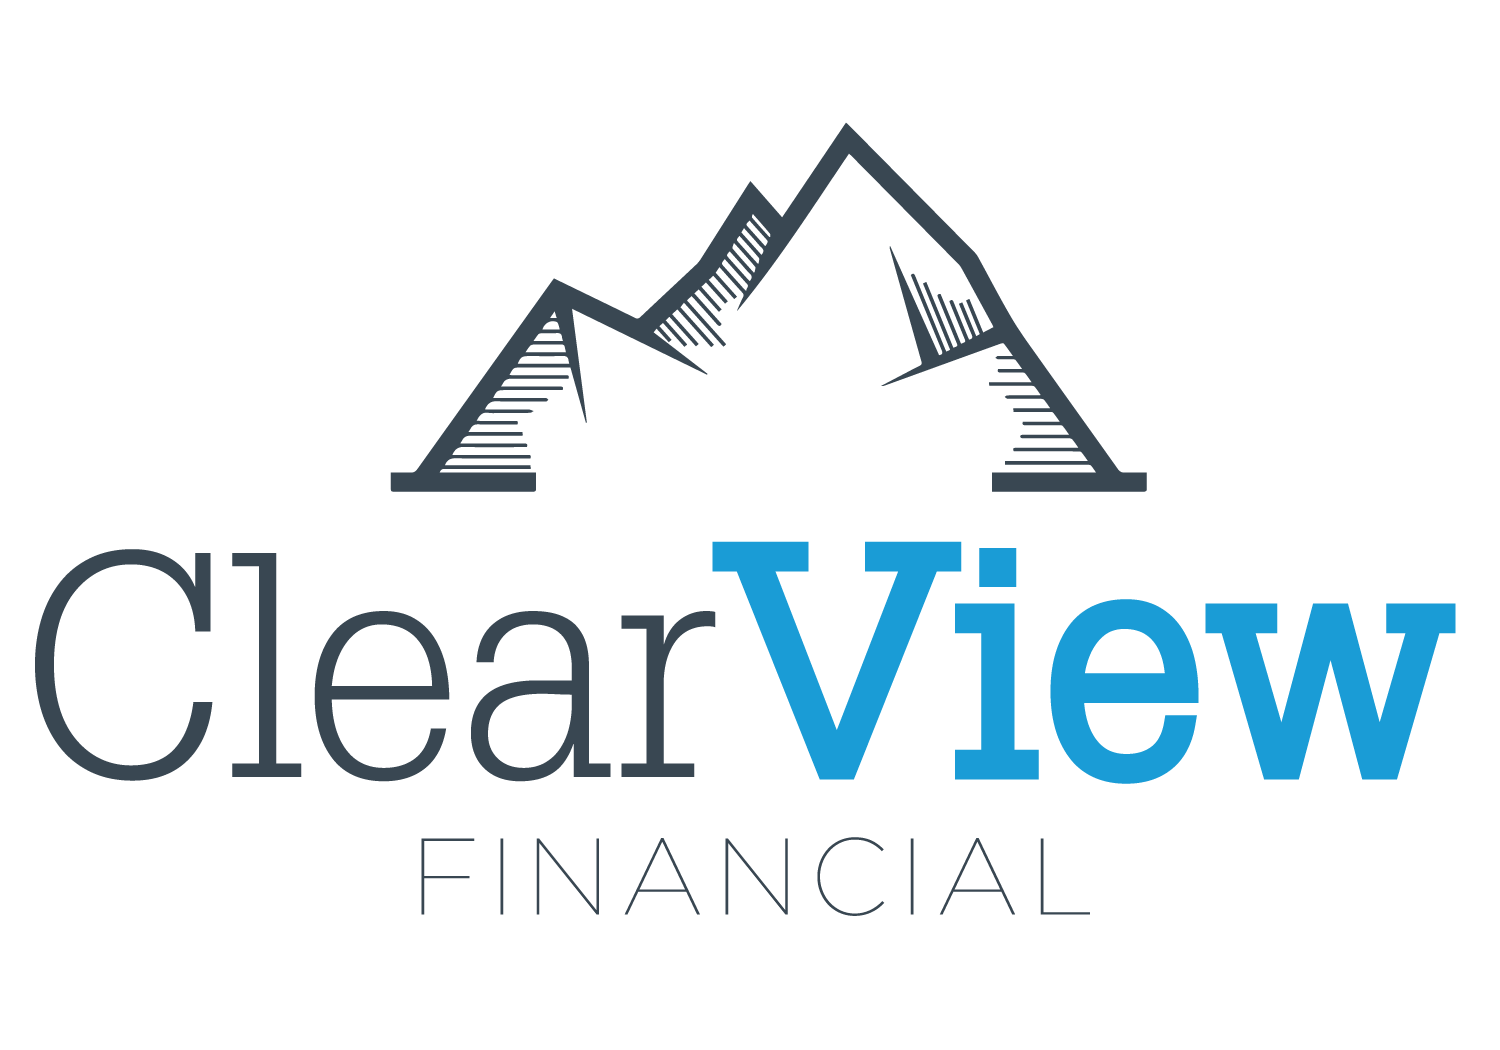 ClearView Financial, LLC